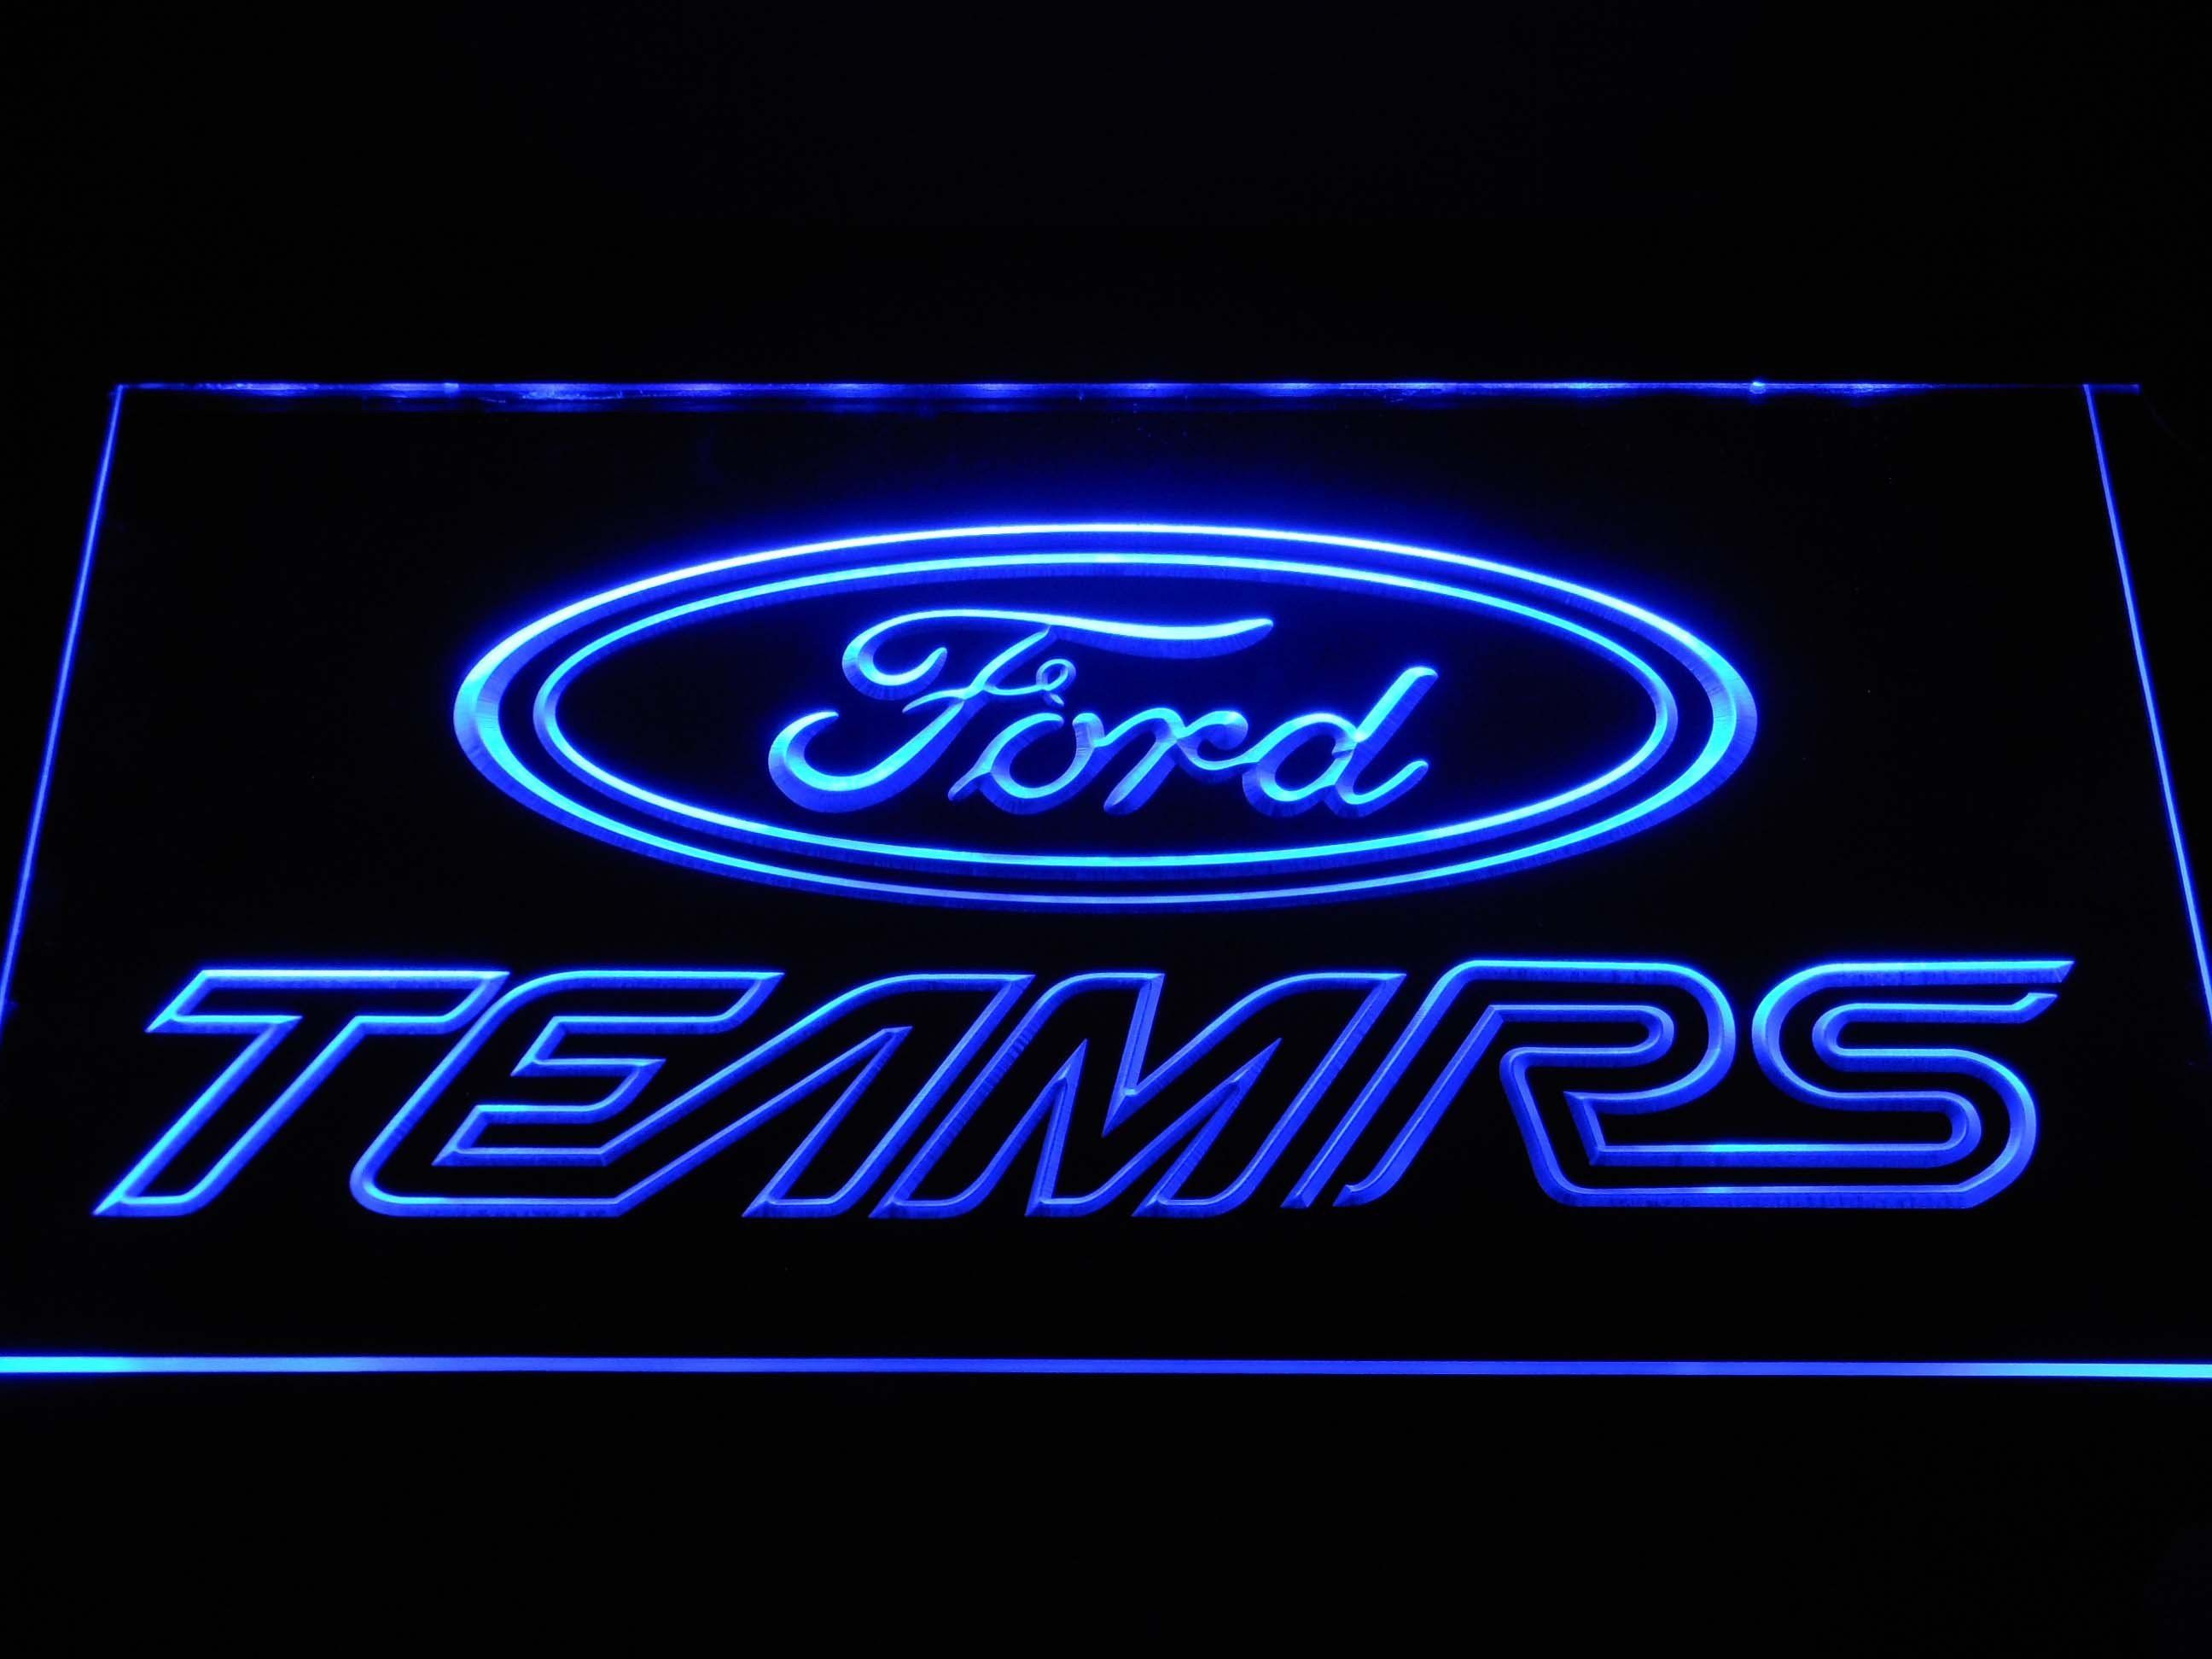 Ford Team Rs Led Neon Sign Neon Signs Led Neon Signs Neon